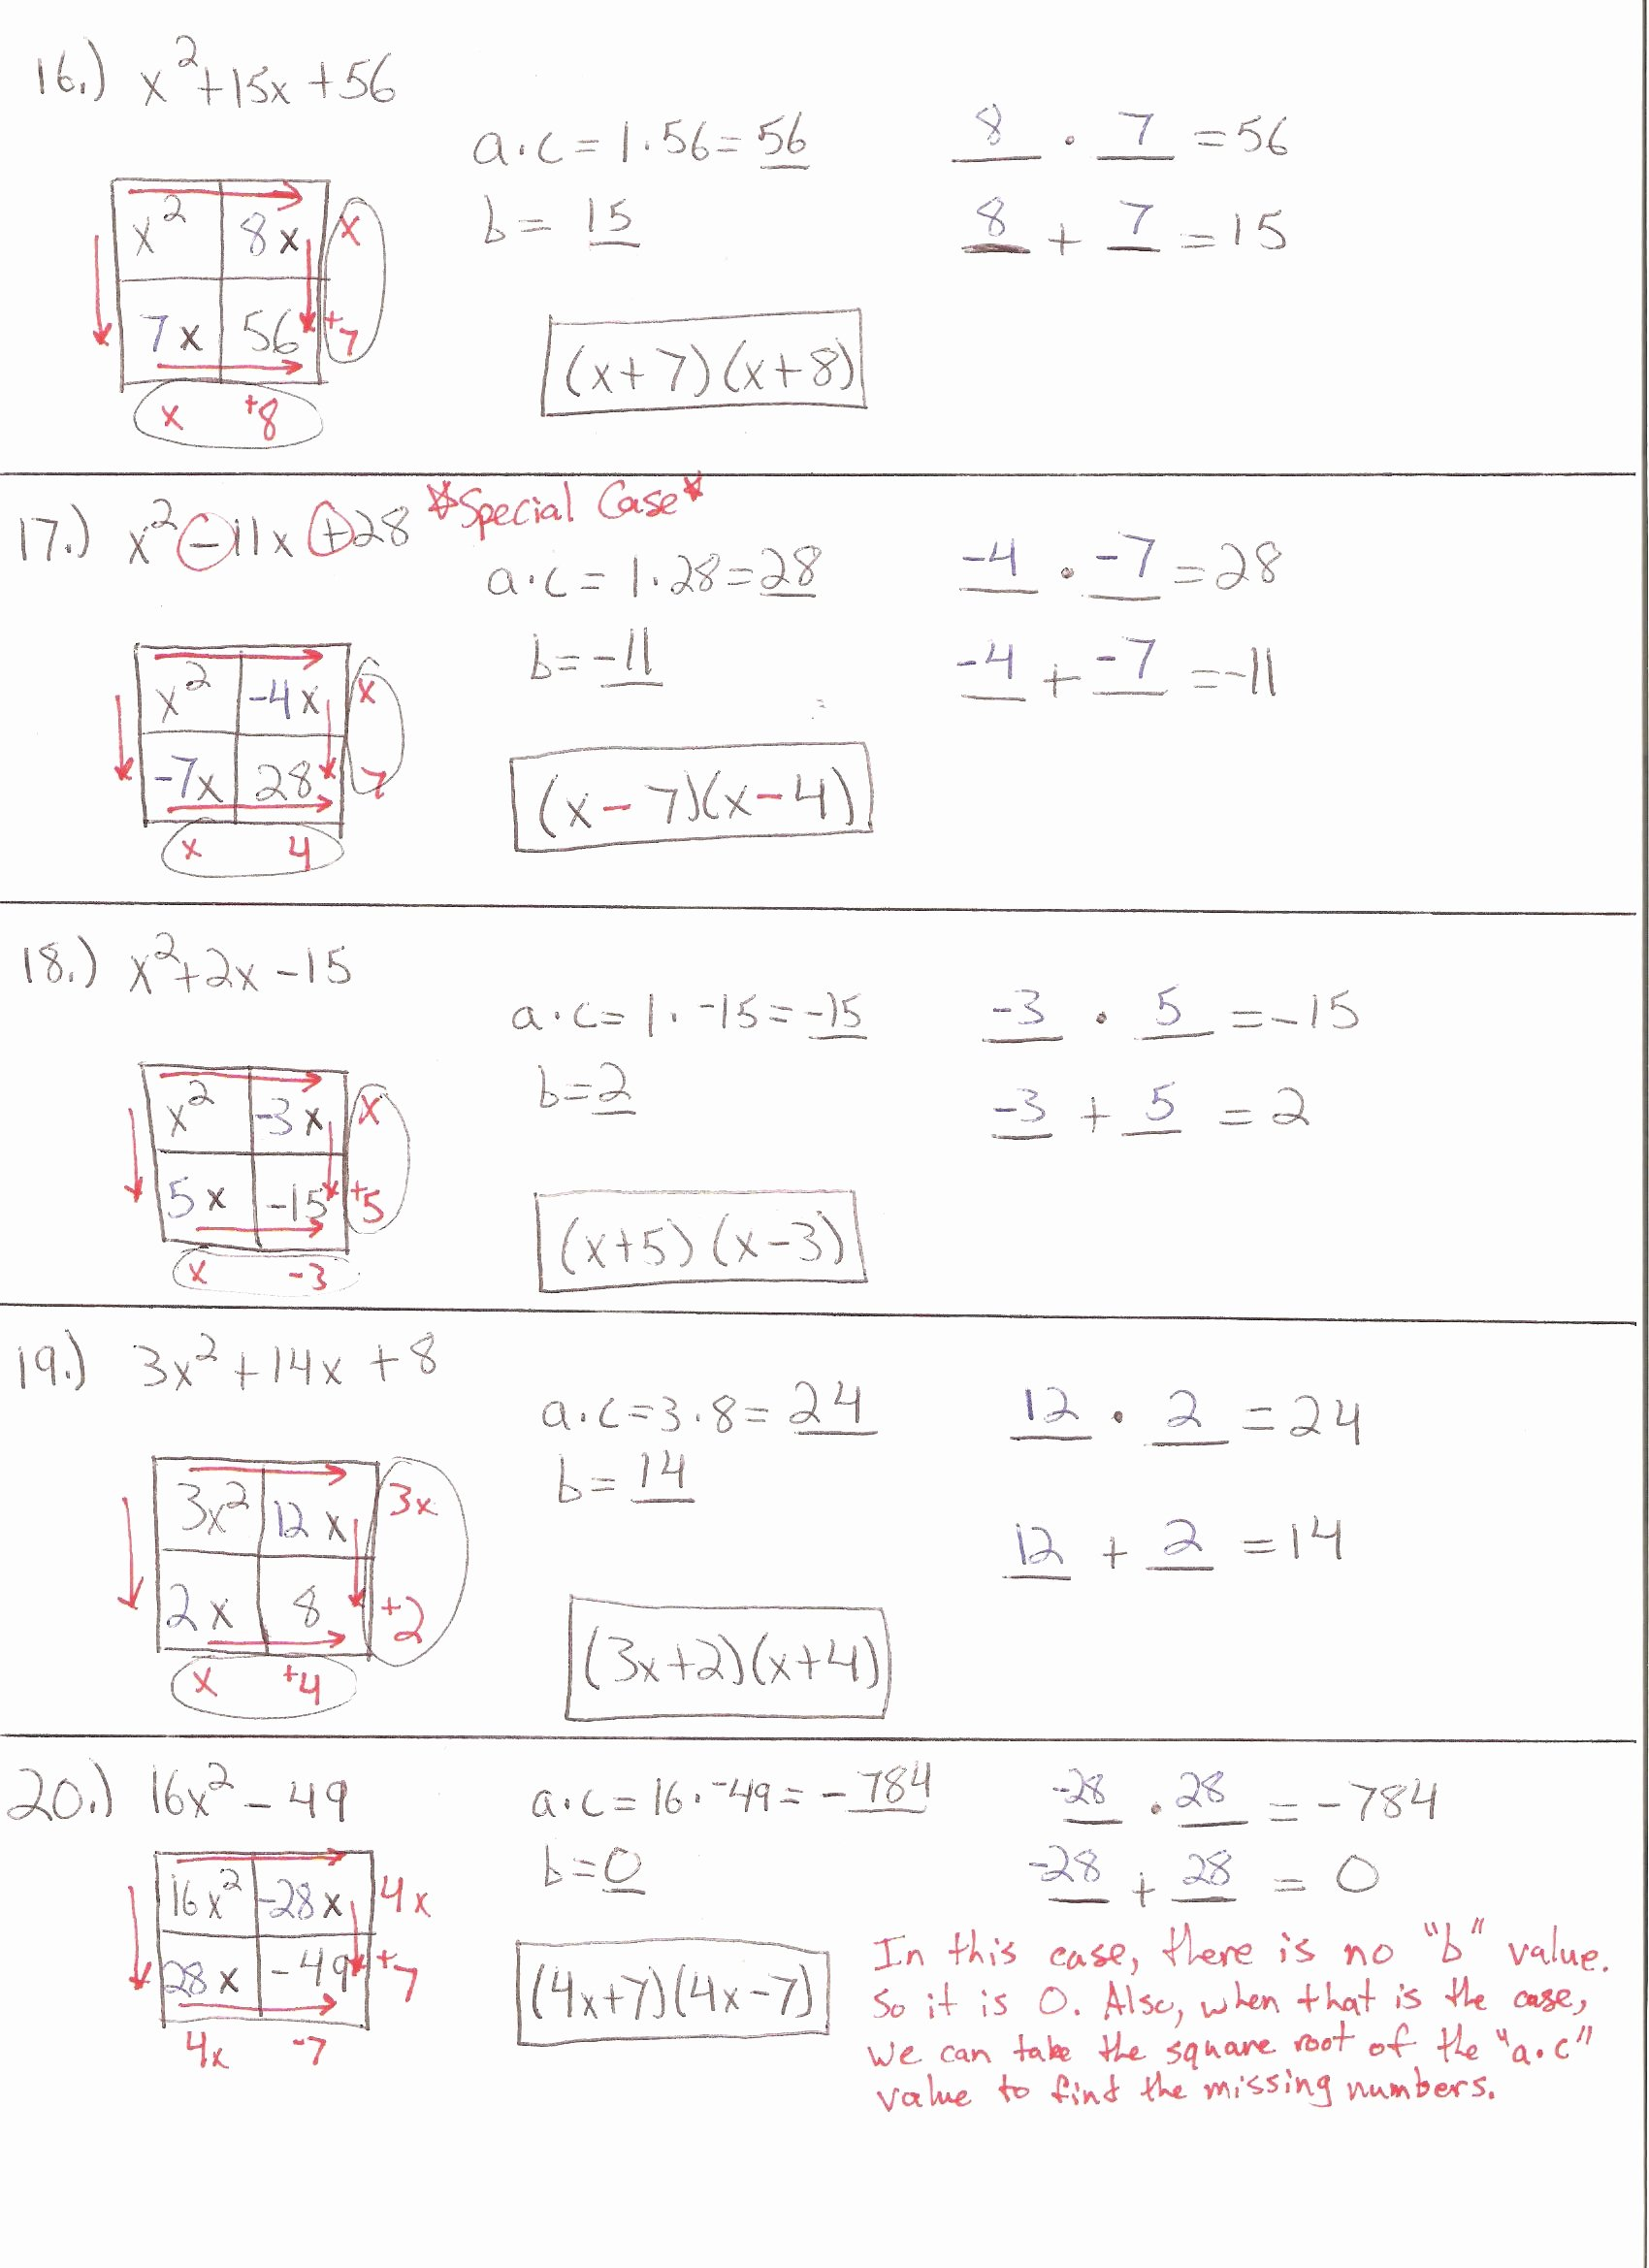 Quadratic Equations Word Problems Worksheet New How to solve A Quadratic Word Problem solving Quadratic